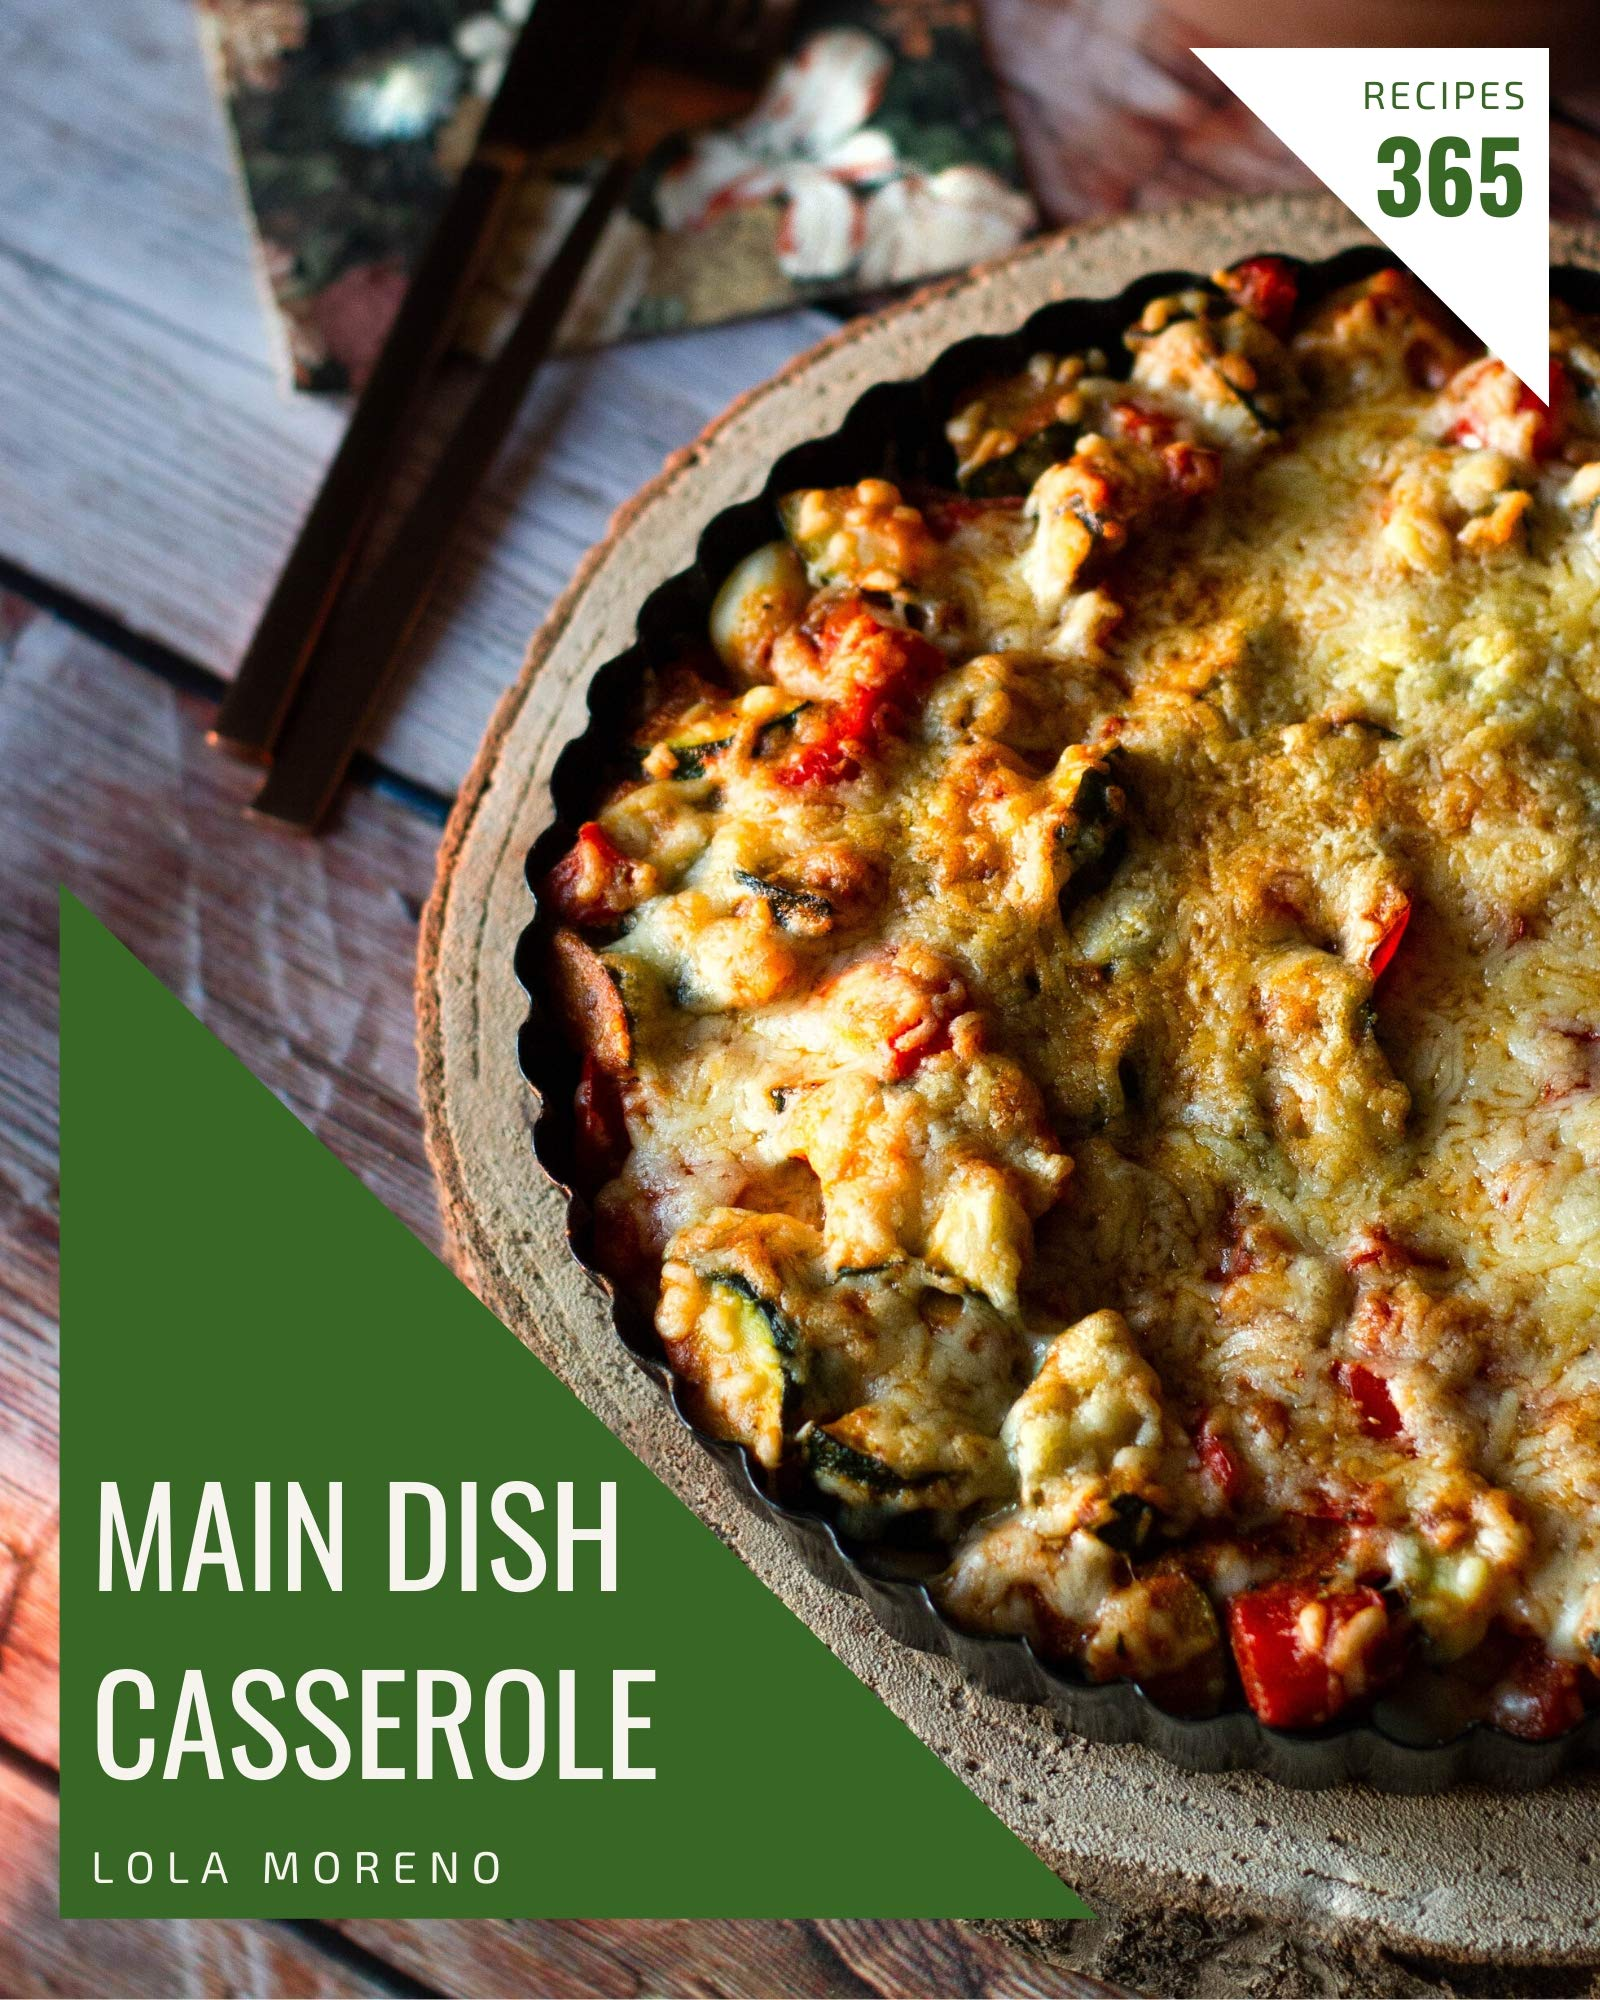 365 Main Dish Casserole Recipes: The Main Dish Casserole Cookbook for All Things Sweet and Wonderful!